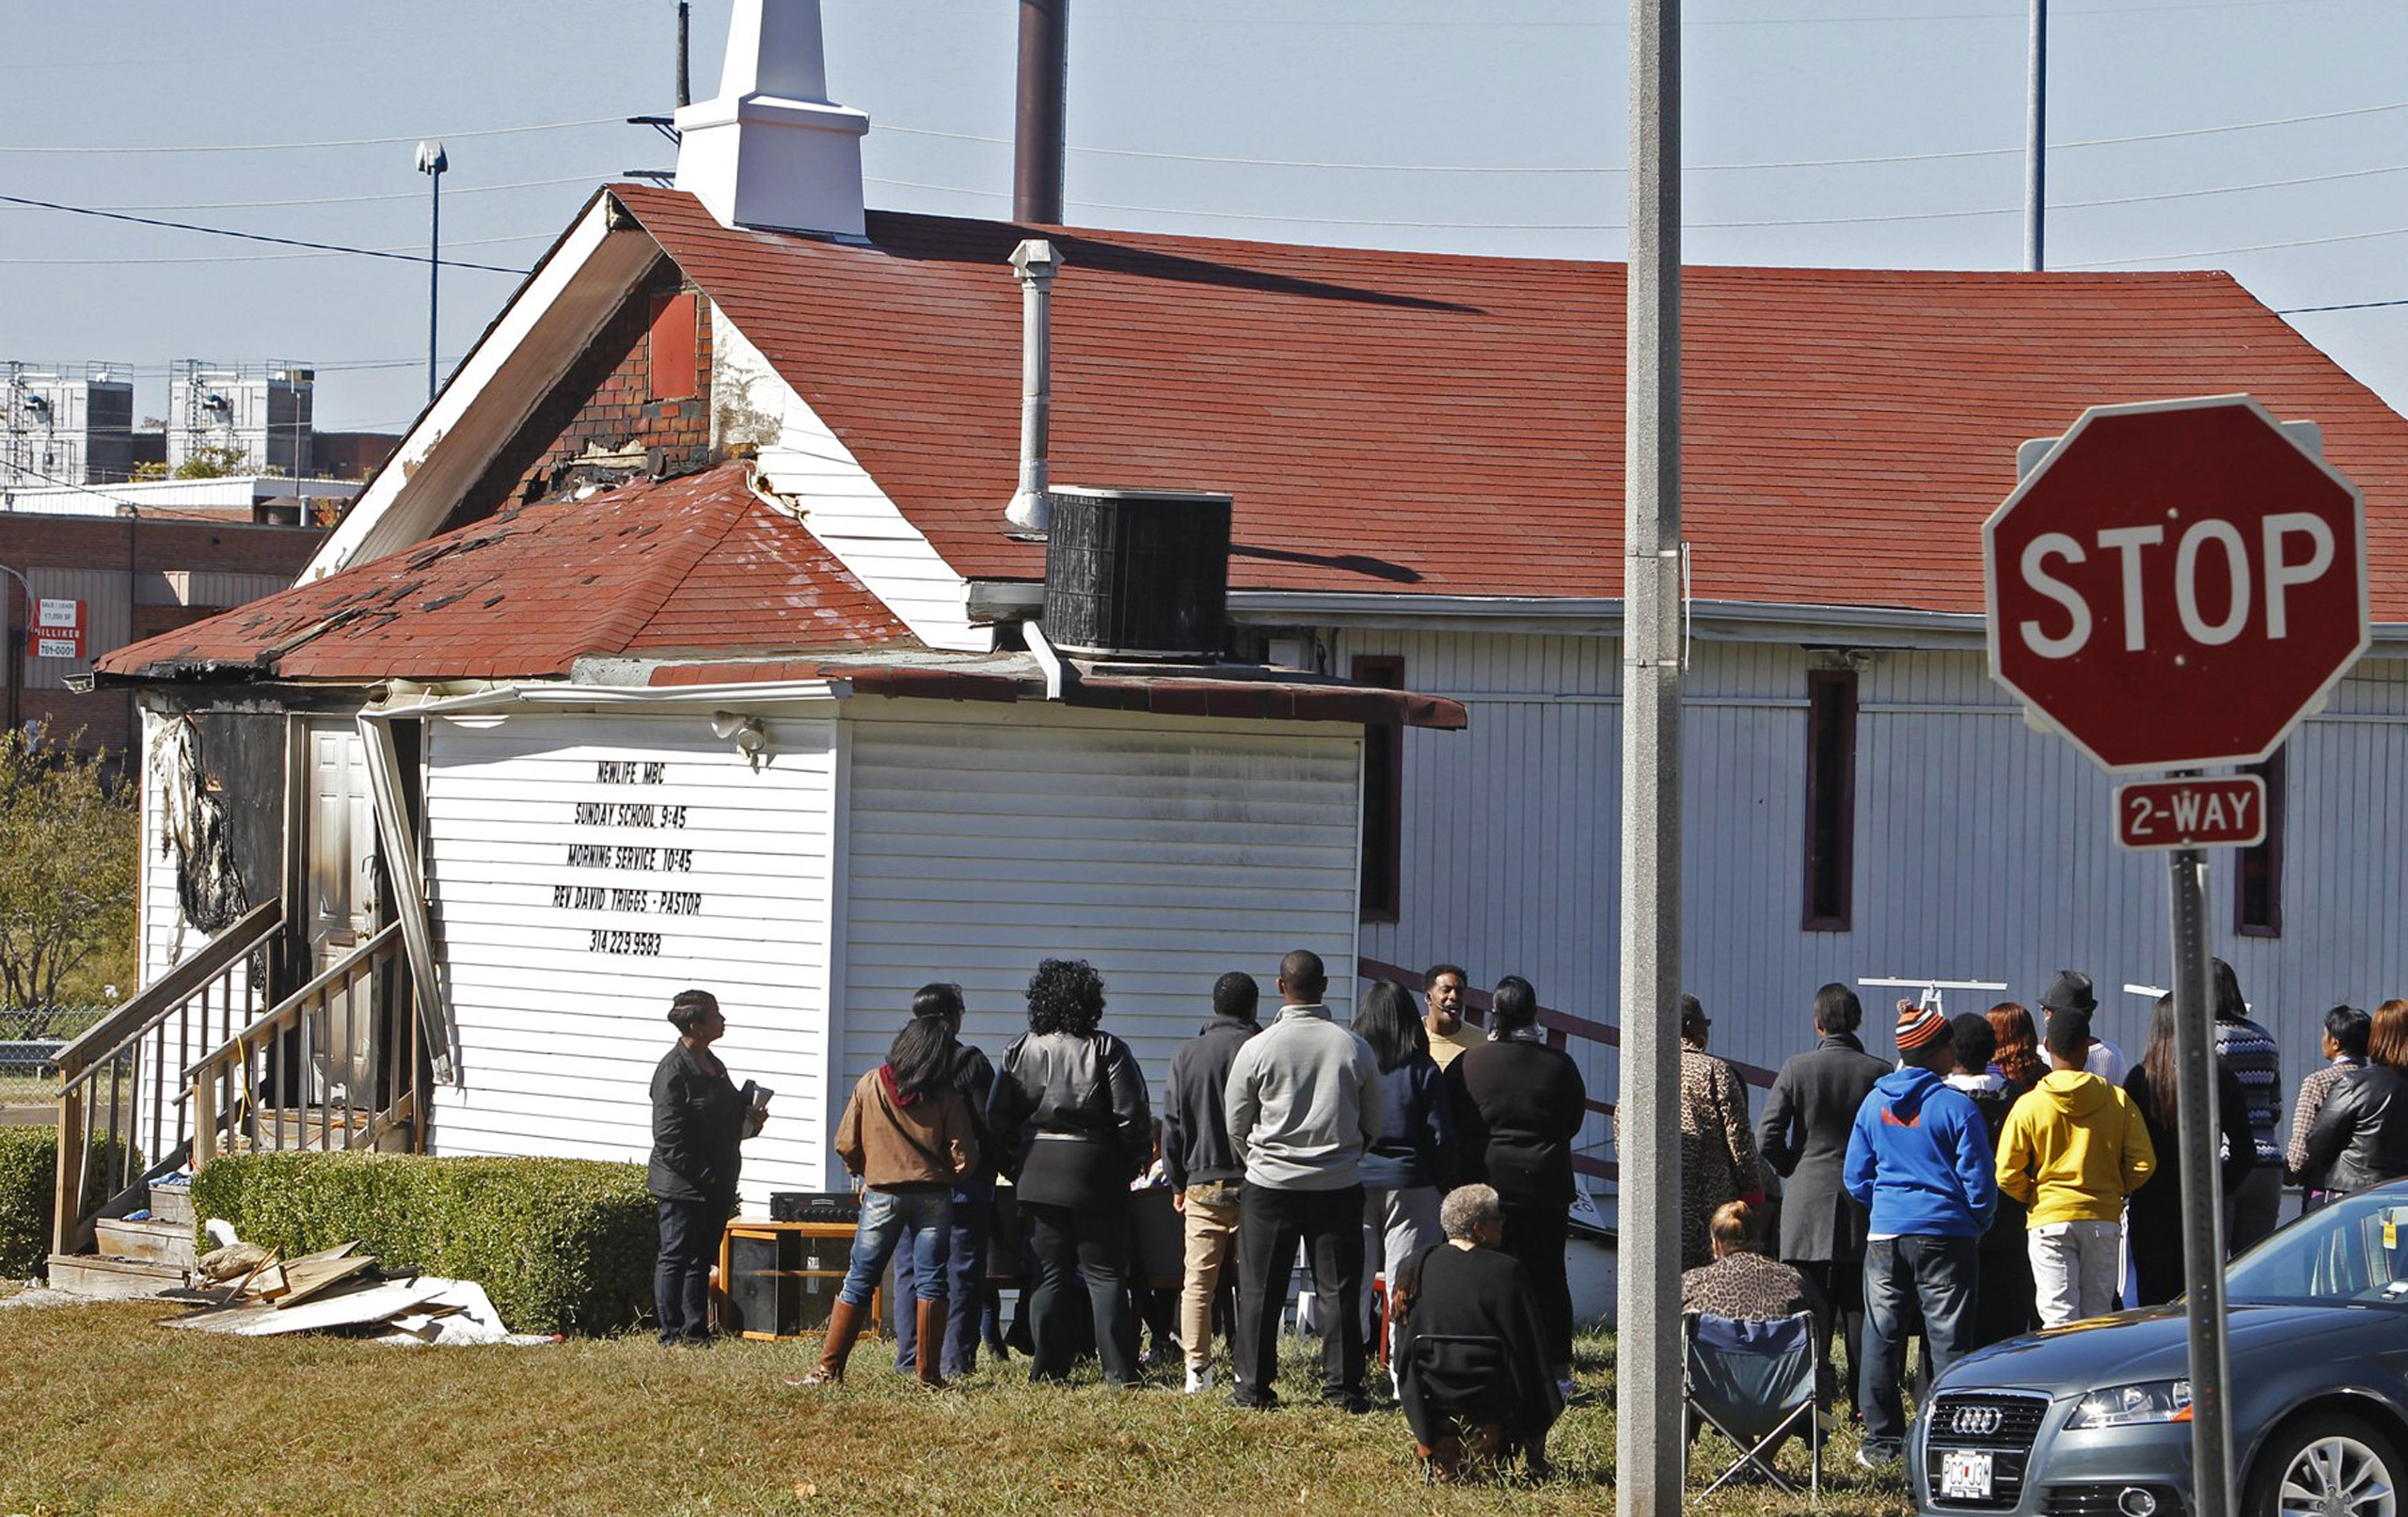 An outdoor service is held following a fire at the New Life Missionary Baptist Church in St. Louis on Oct. 18, 2015.